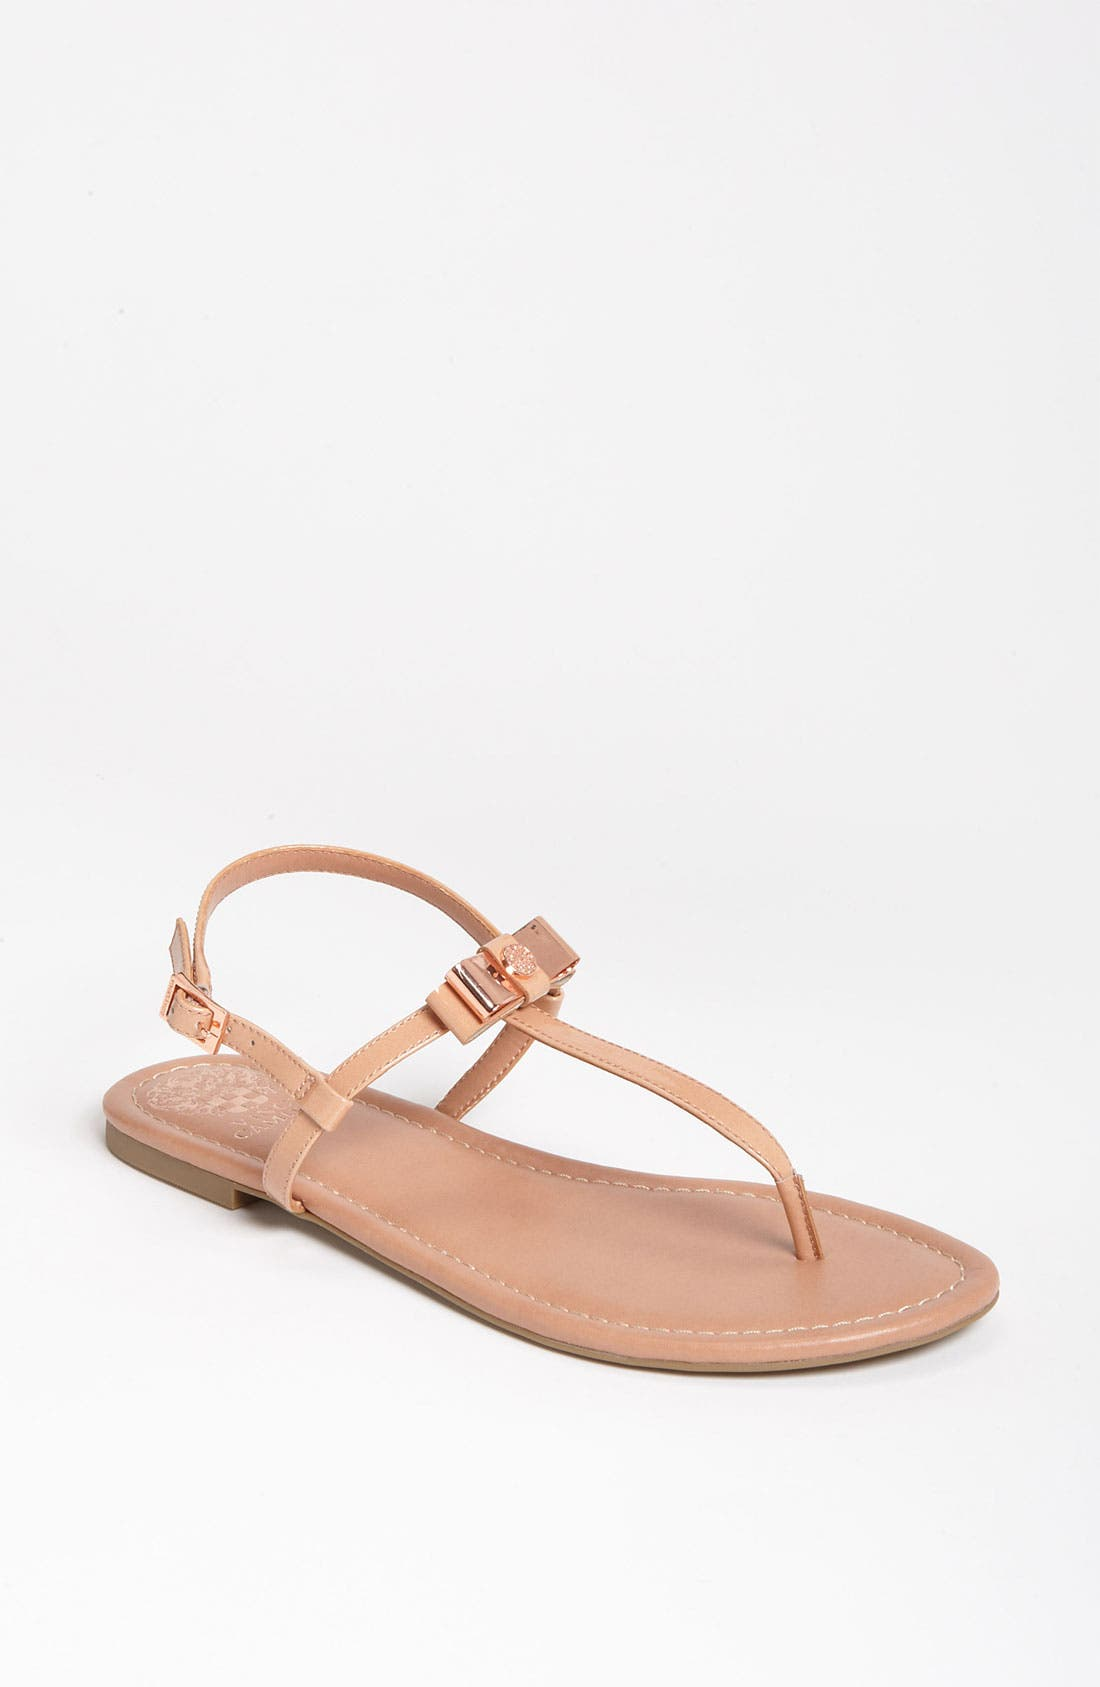 Alternate Image 1 Selected - Vince Camuto 'Malinda' Sandal